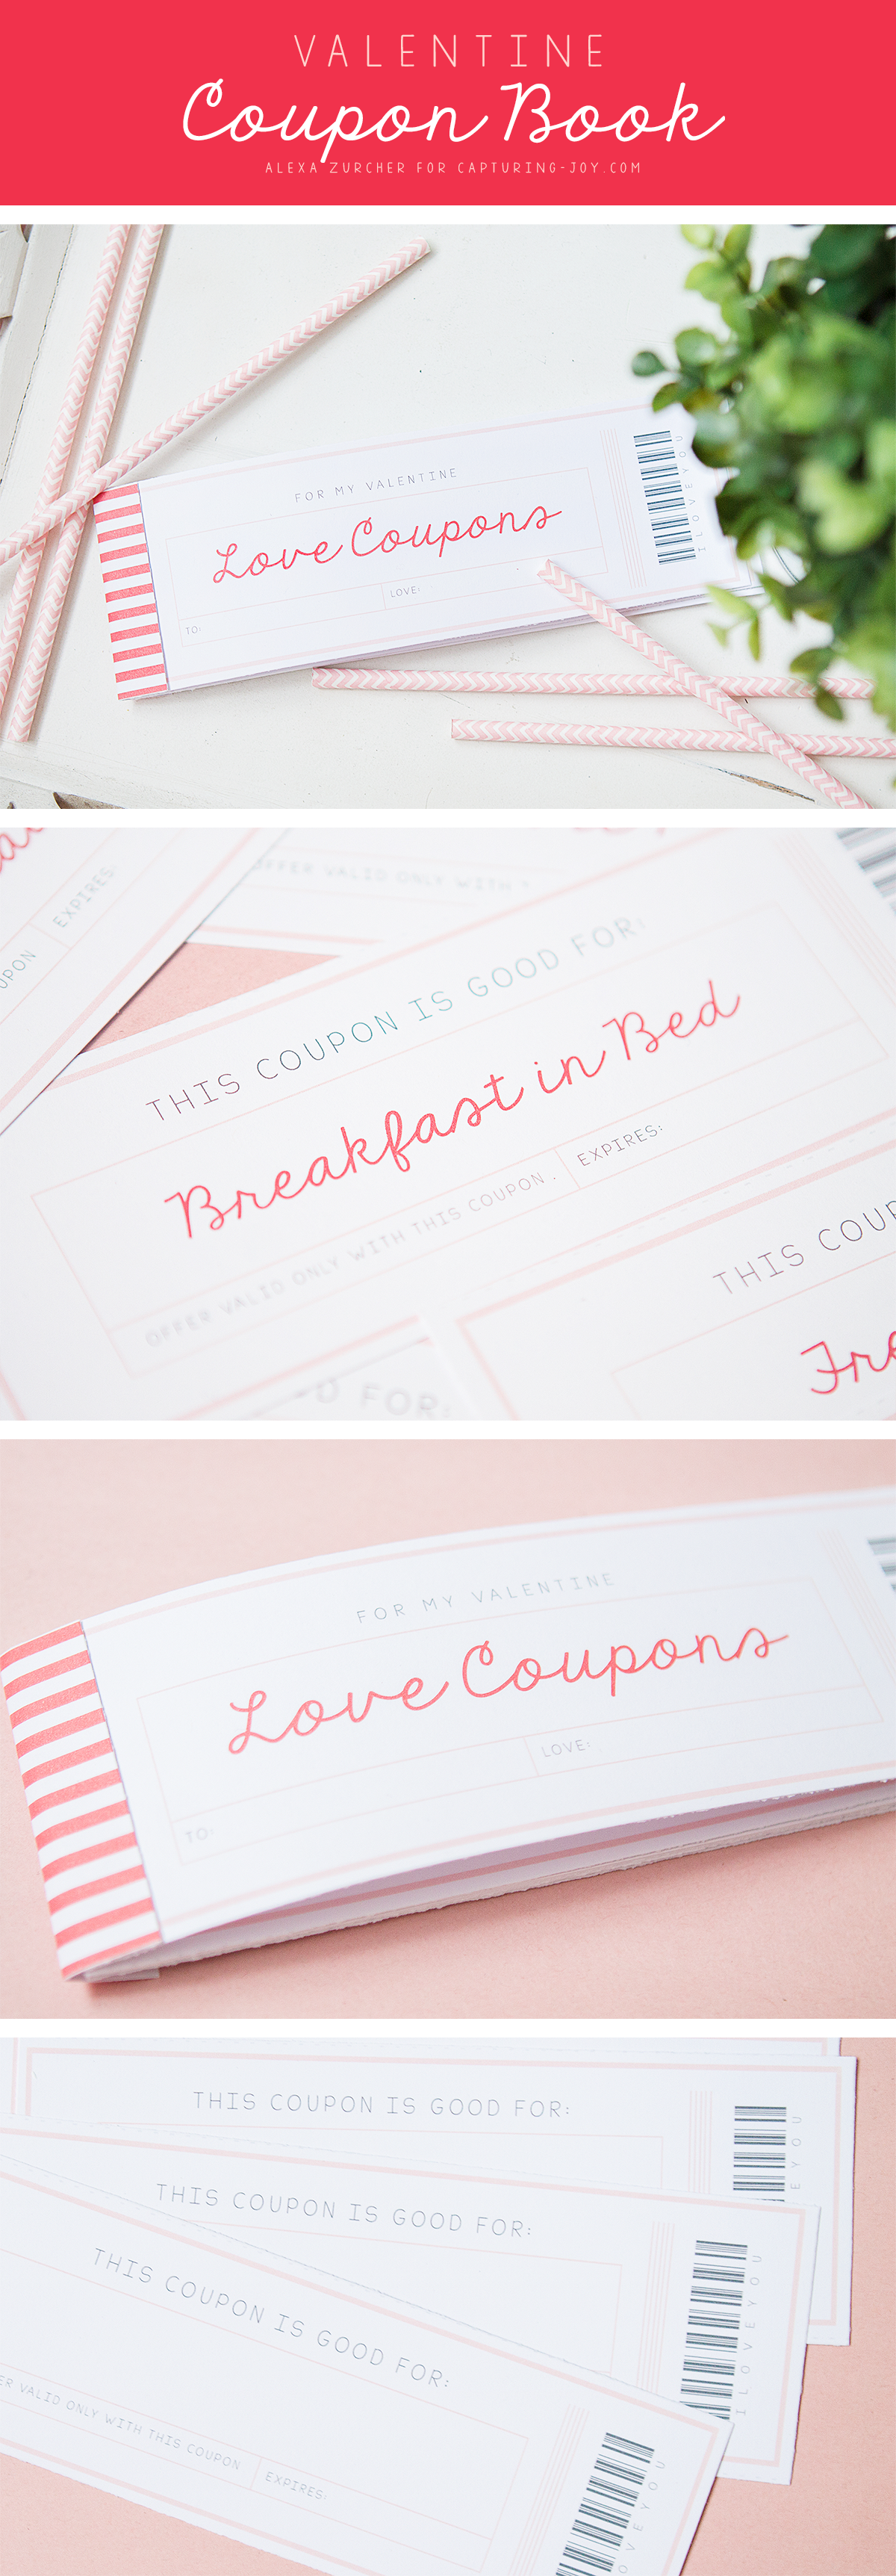 valentine coupon book printable valentine coupon book printable 2